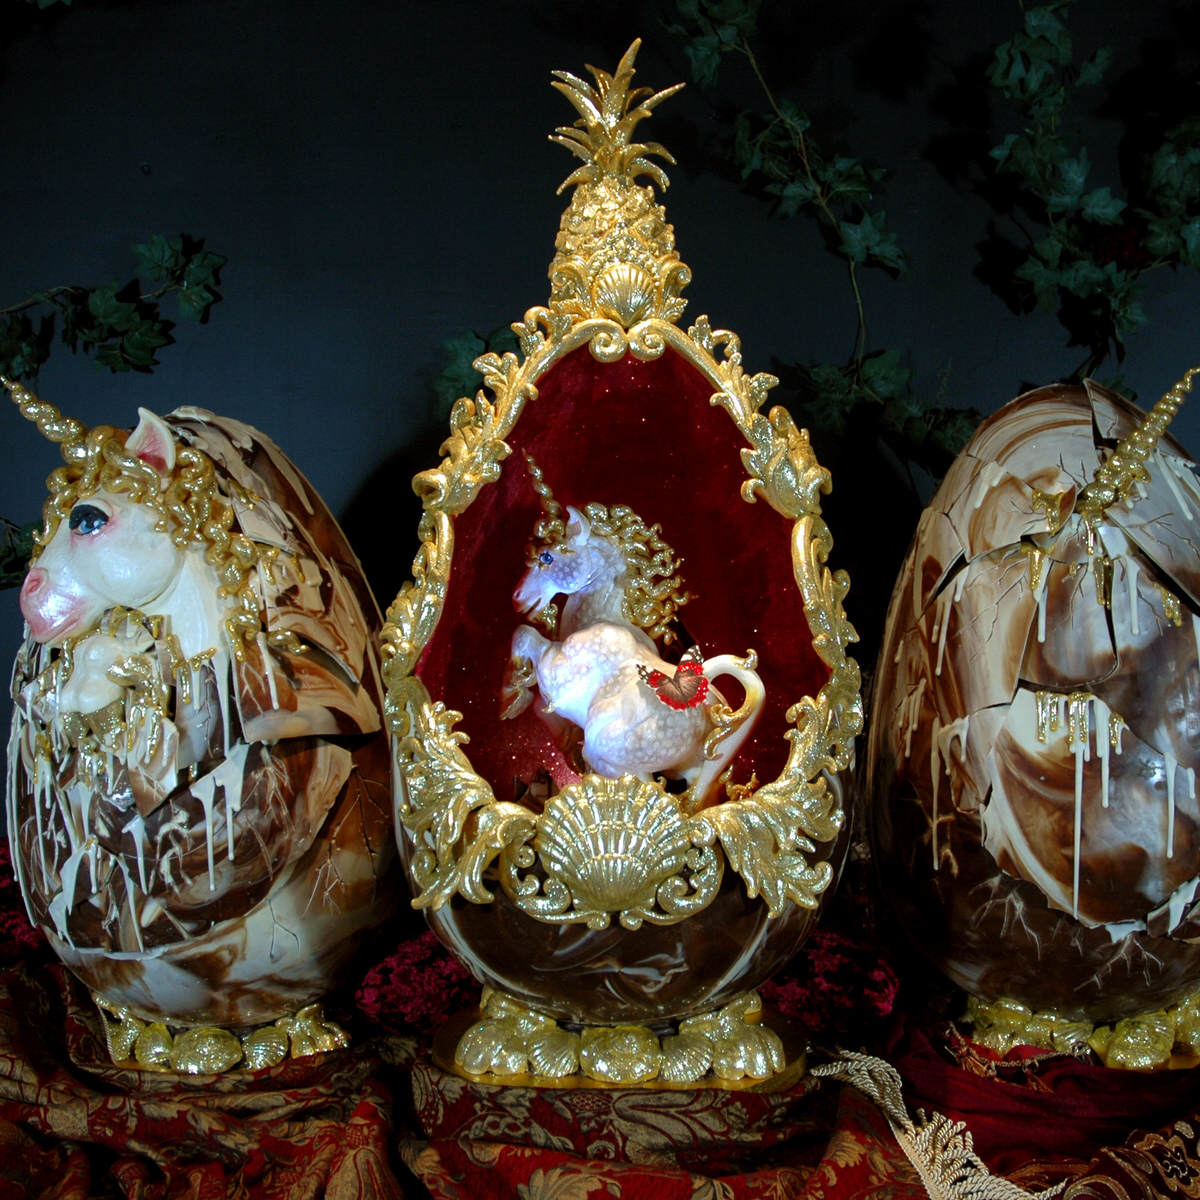 The Worlds Most Expensive Easter Eggs Are Absolutely Ridiculous SWNS FABERGE EASTER 07 1